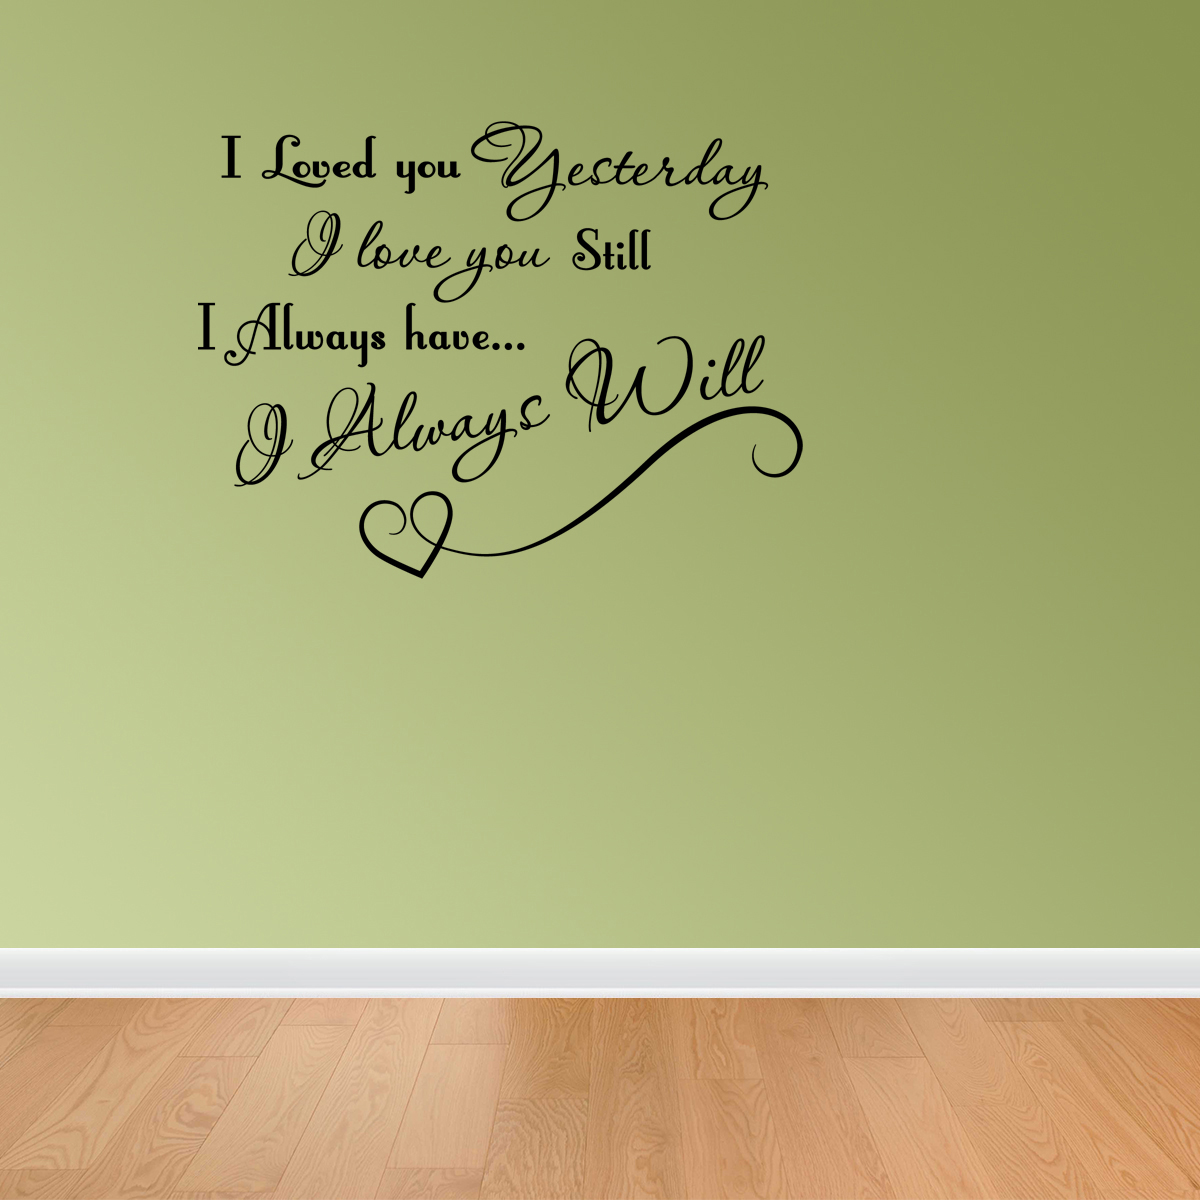 I Loved You Yesterday Wall Decal Sticker - i loved you yesterday i ...